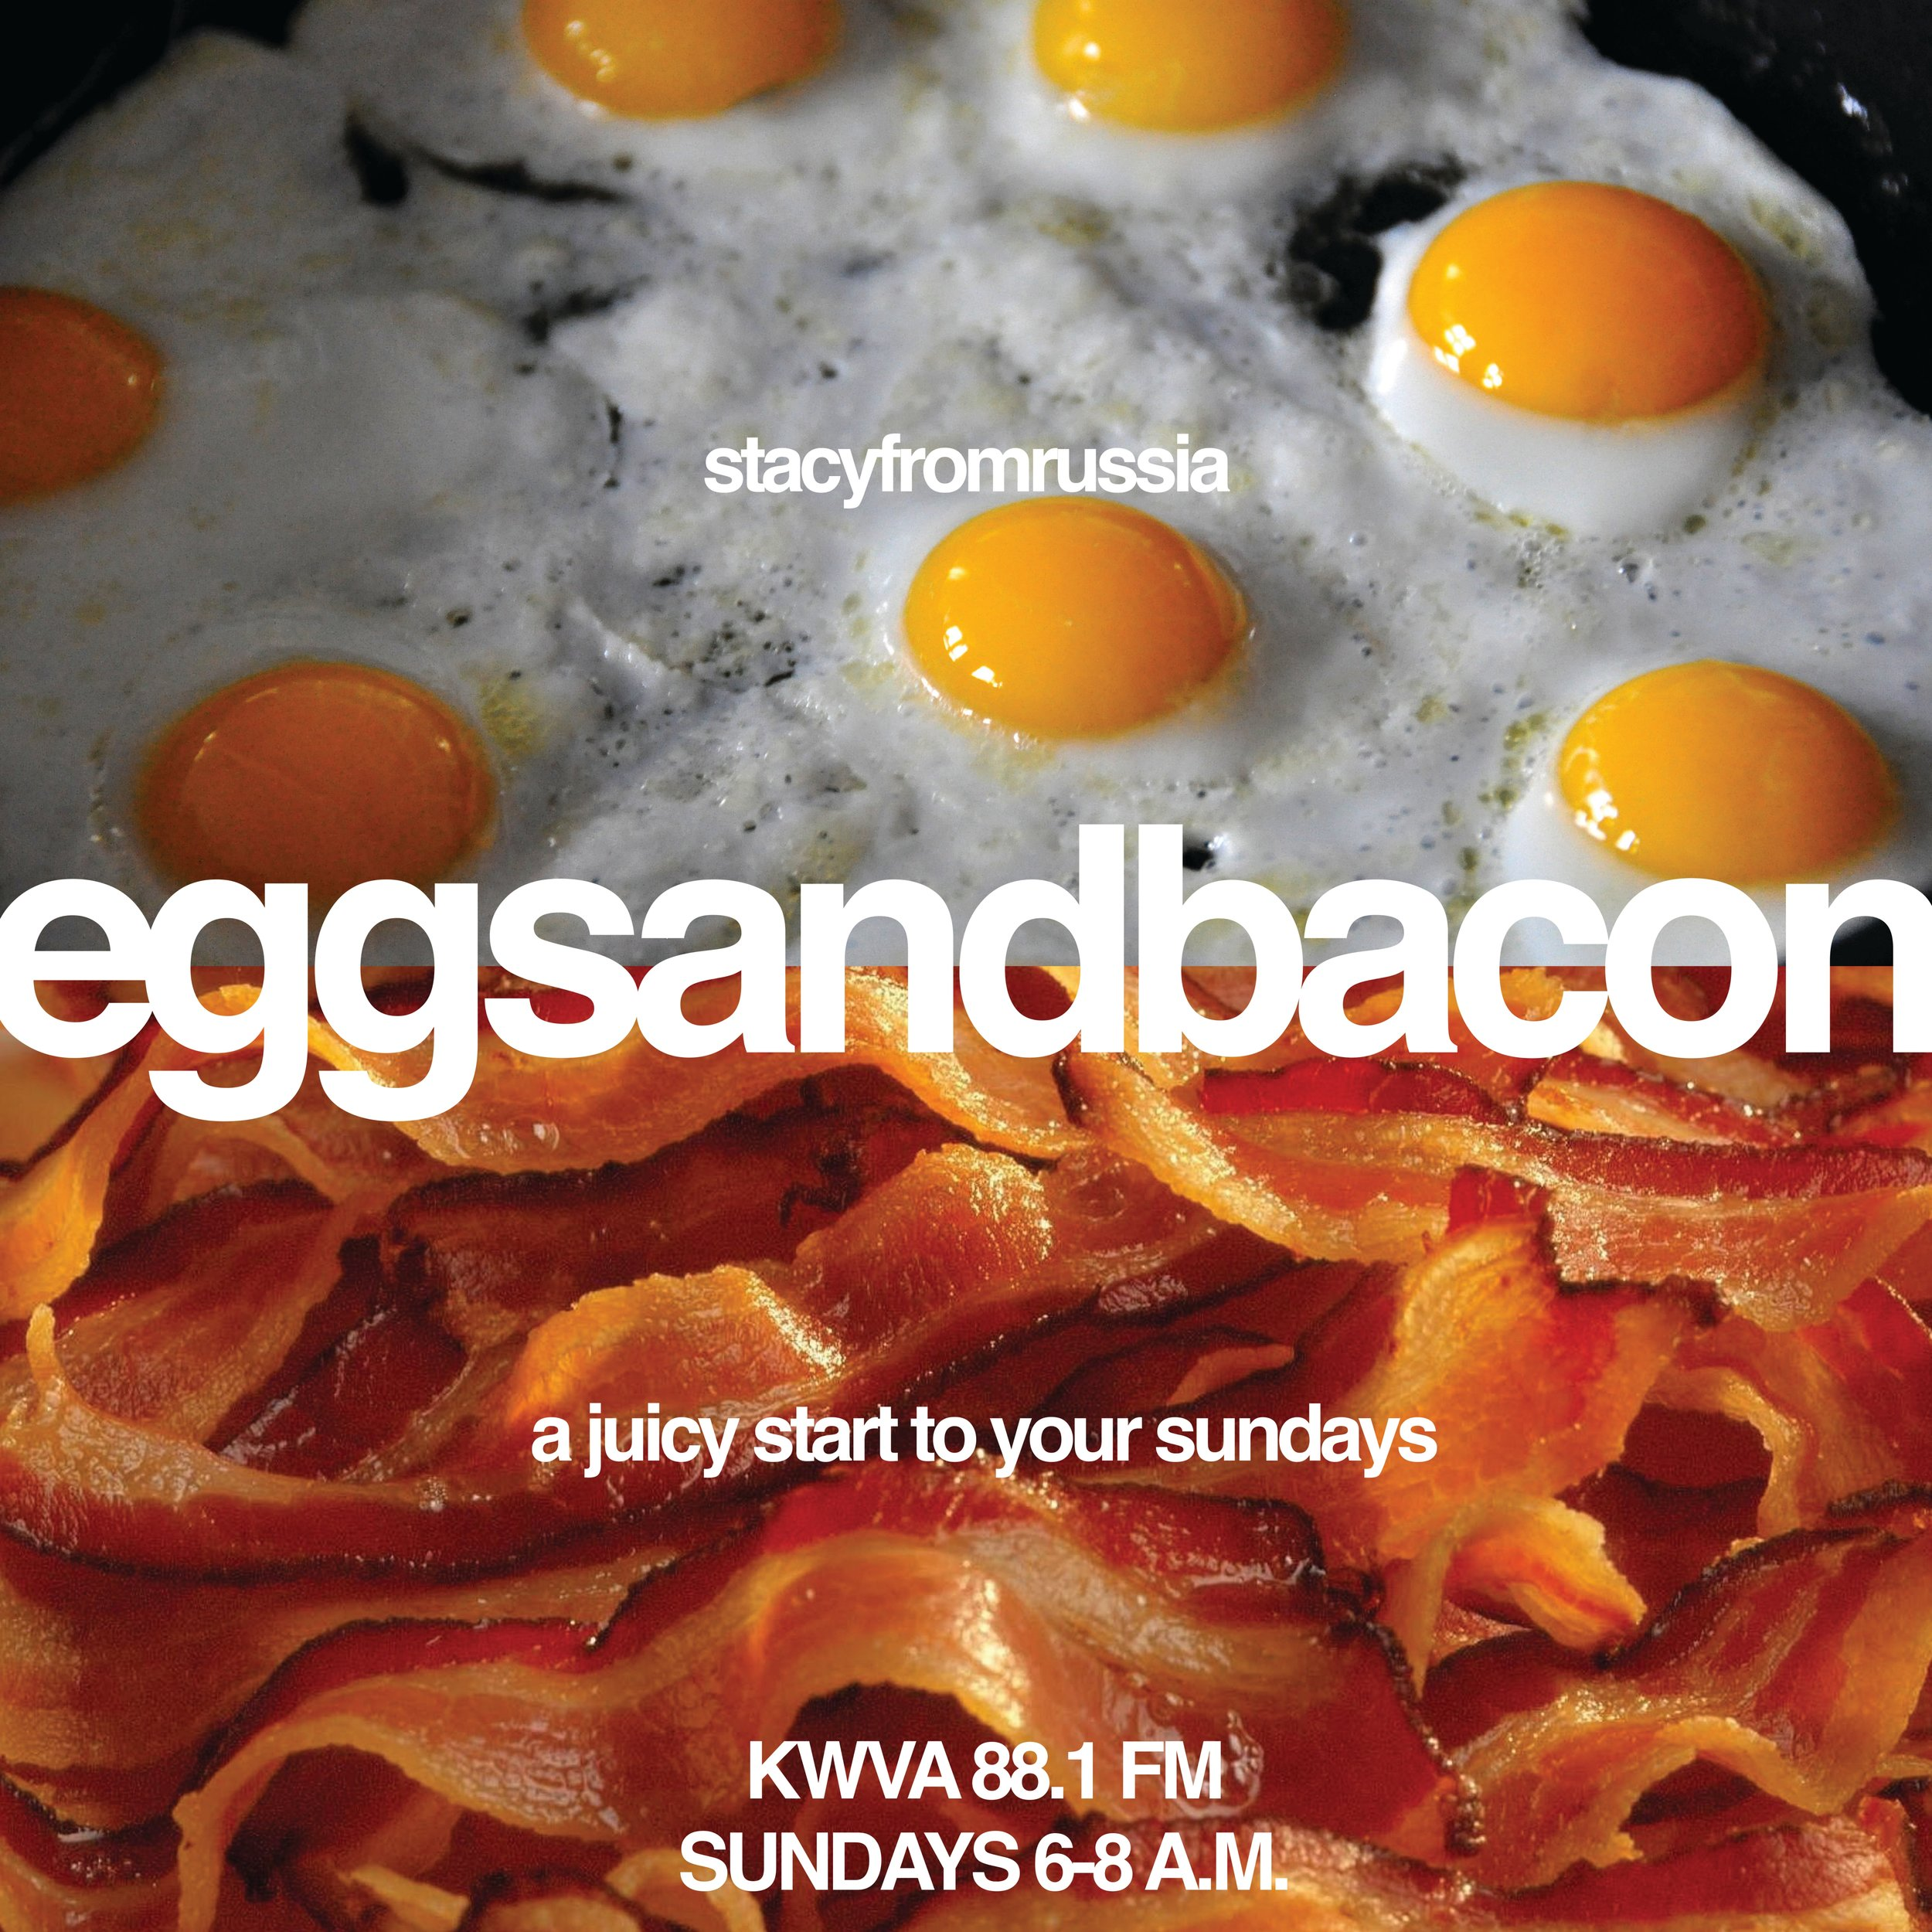 eggs and bacon show cover.jpg